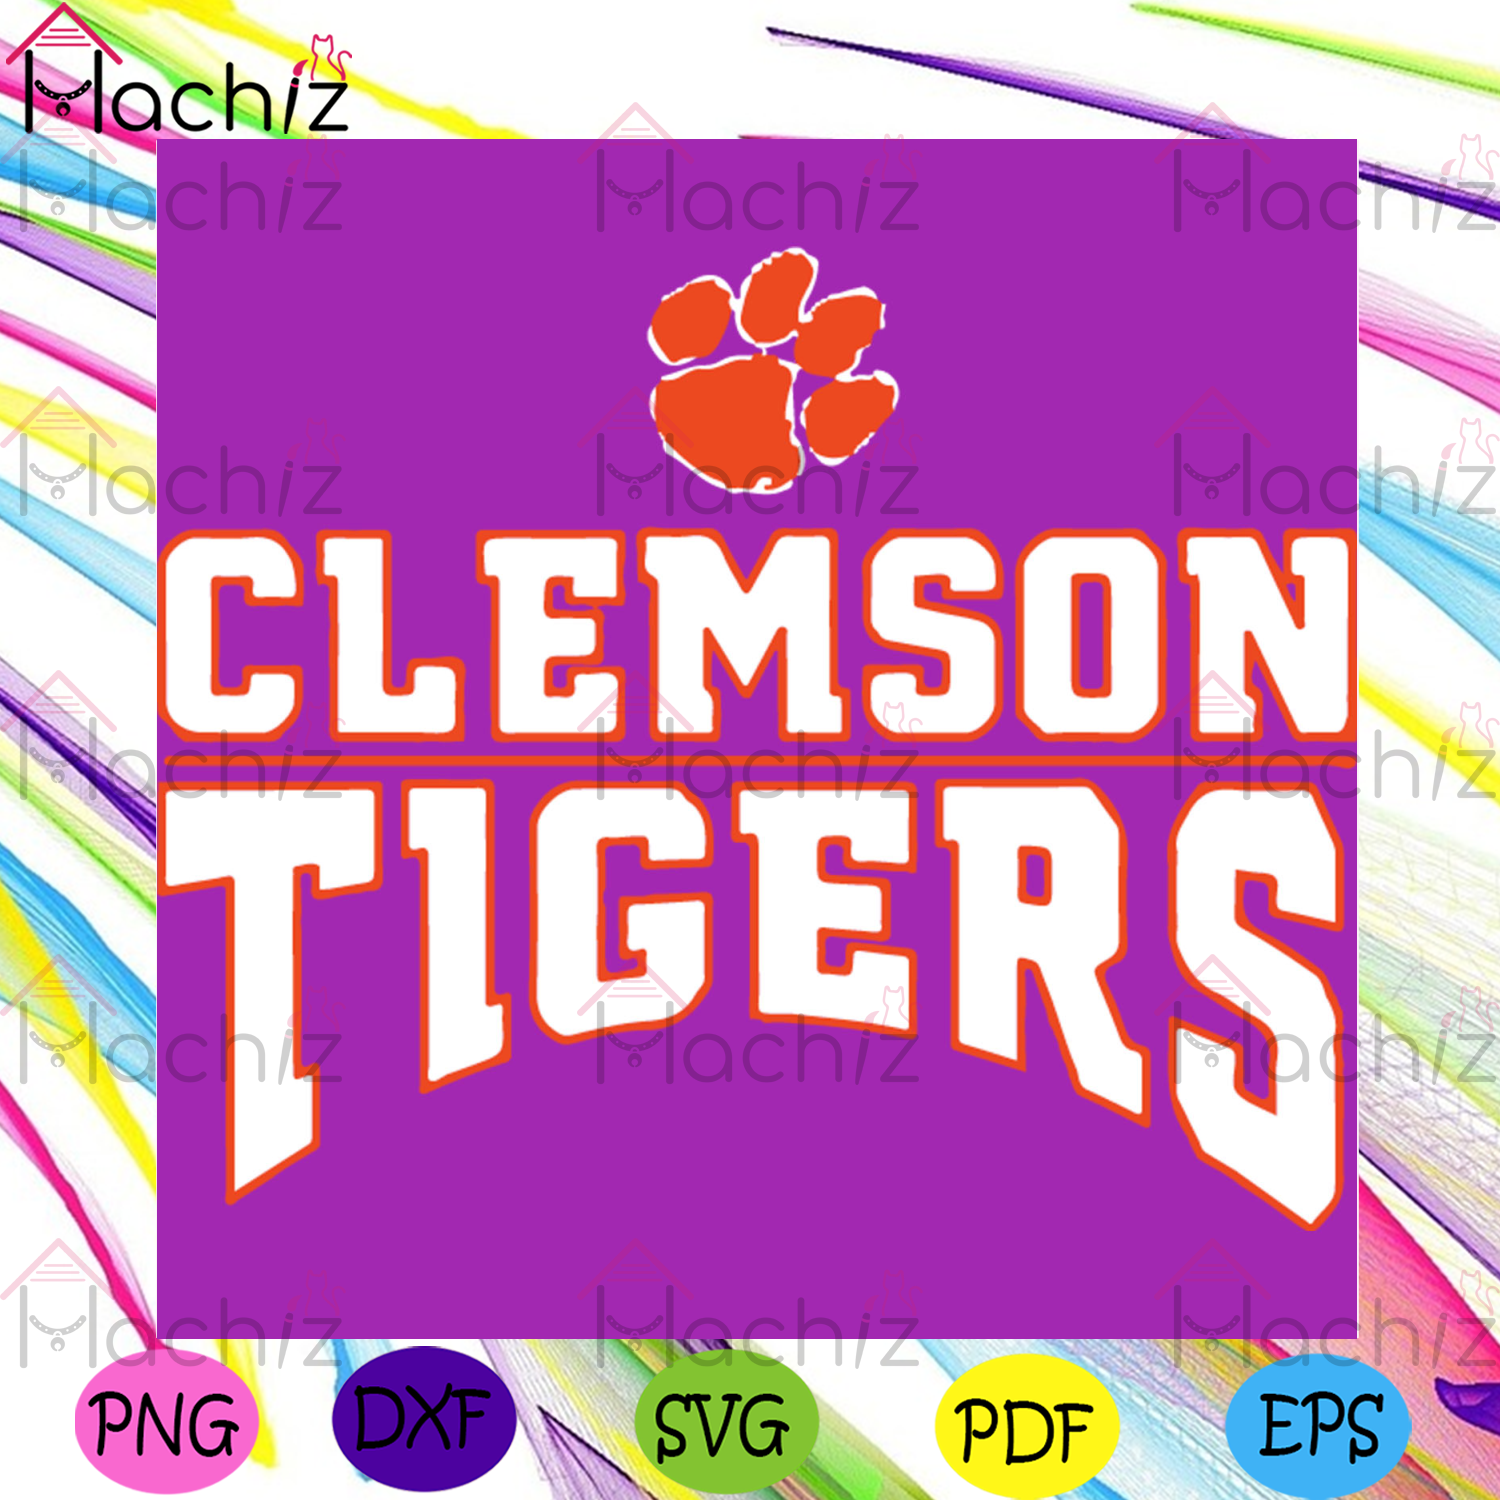 Clemson Tigers Svg, Sport Svg, Clemson Tigers Team Svg, Clemson Tigers Logo Svg, Clemson Tigers Football Svg, Tigers Fans Svg, NCAA Svg, NCAA Team Svg, NCAA Gift Svg, Football Svg, Football Lovers Svg, Football Fans svg,